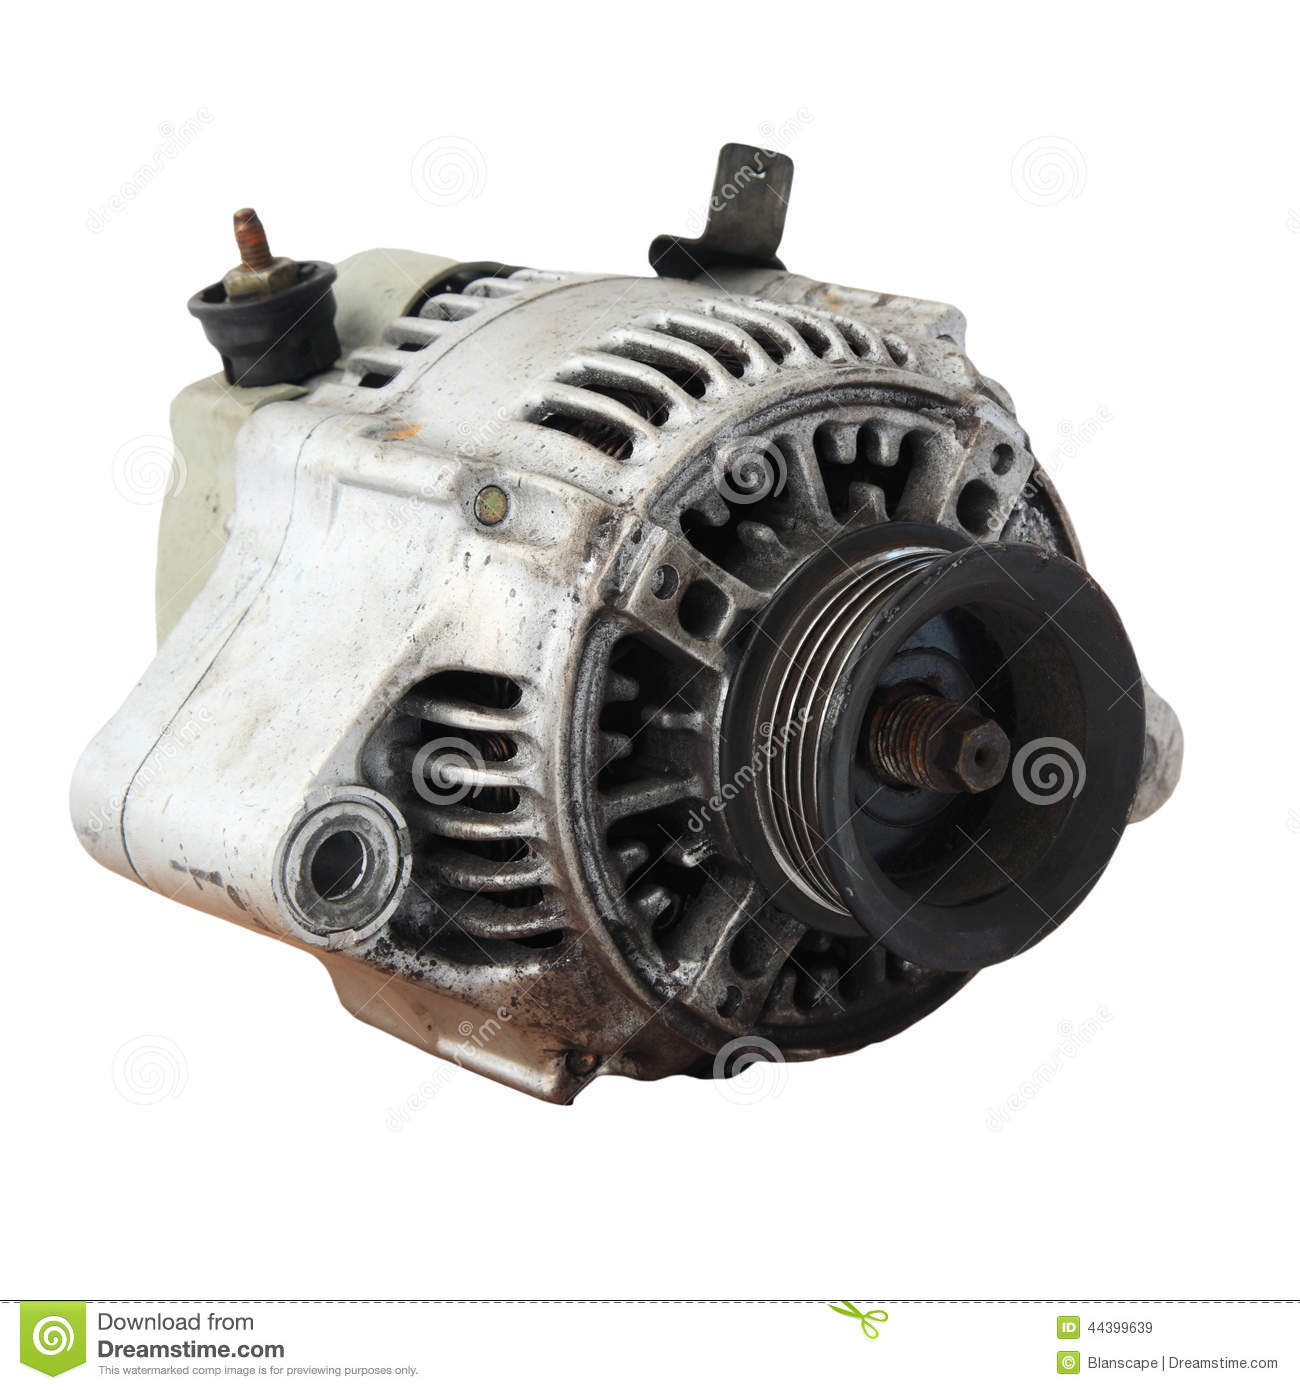 Used Automobile Generator Or Dynamo Isolated Stock Image - Image of energy, engine: 44399639